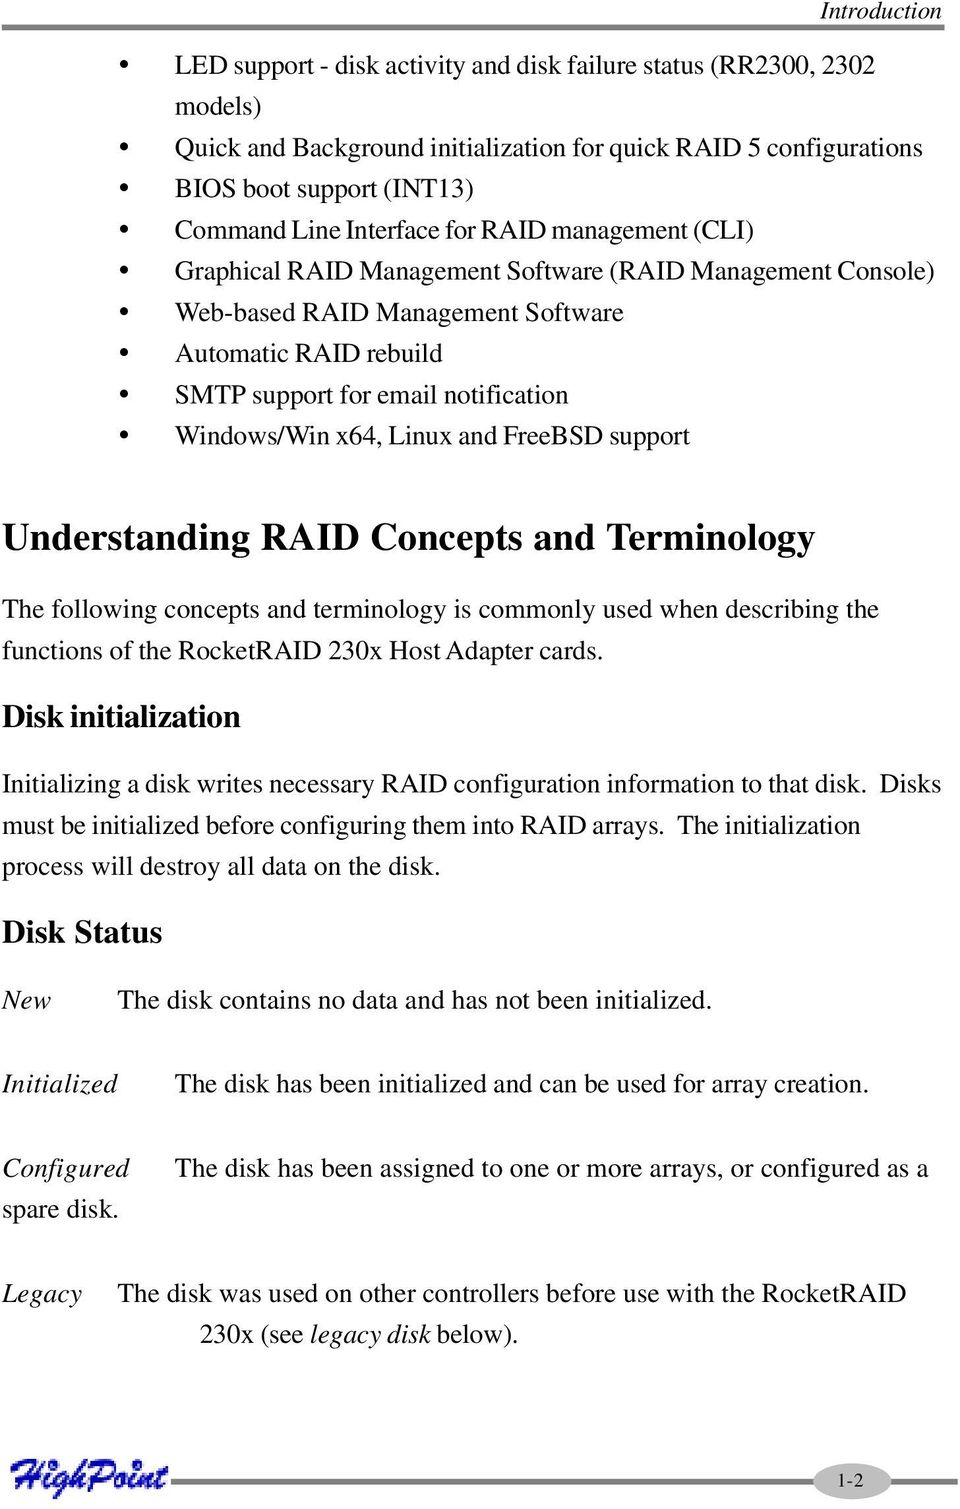 Windows/Win x64, Linux and FreeBSD support Understanding RAID Concepts and Terminology The following concepts and terminology is commonly used when describing the functions of the RocketRAID 230x